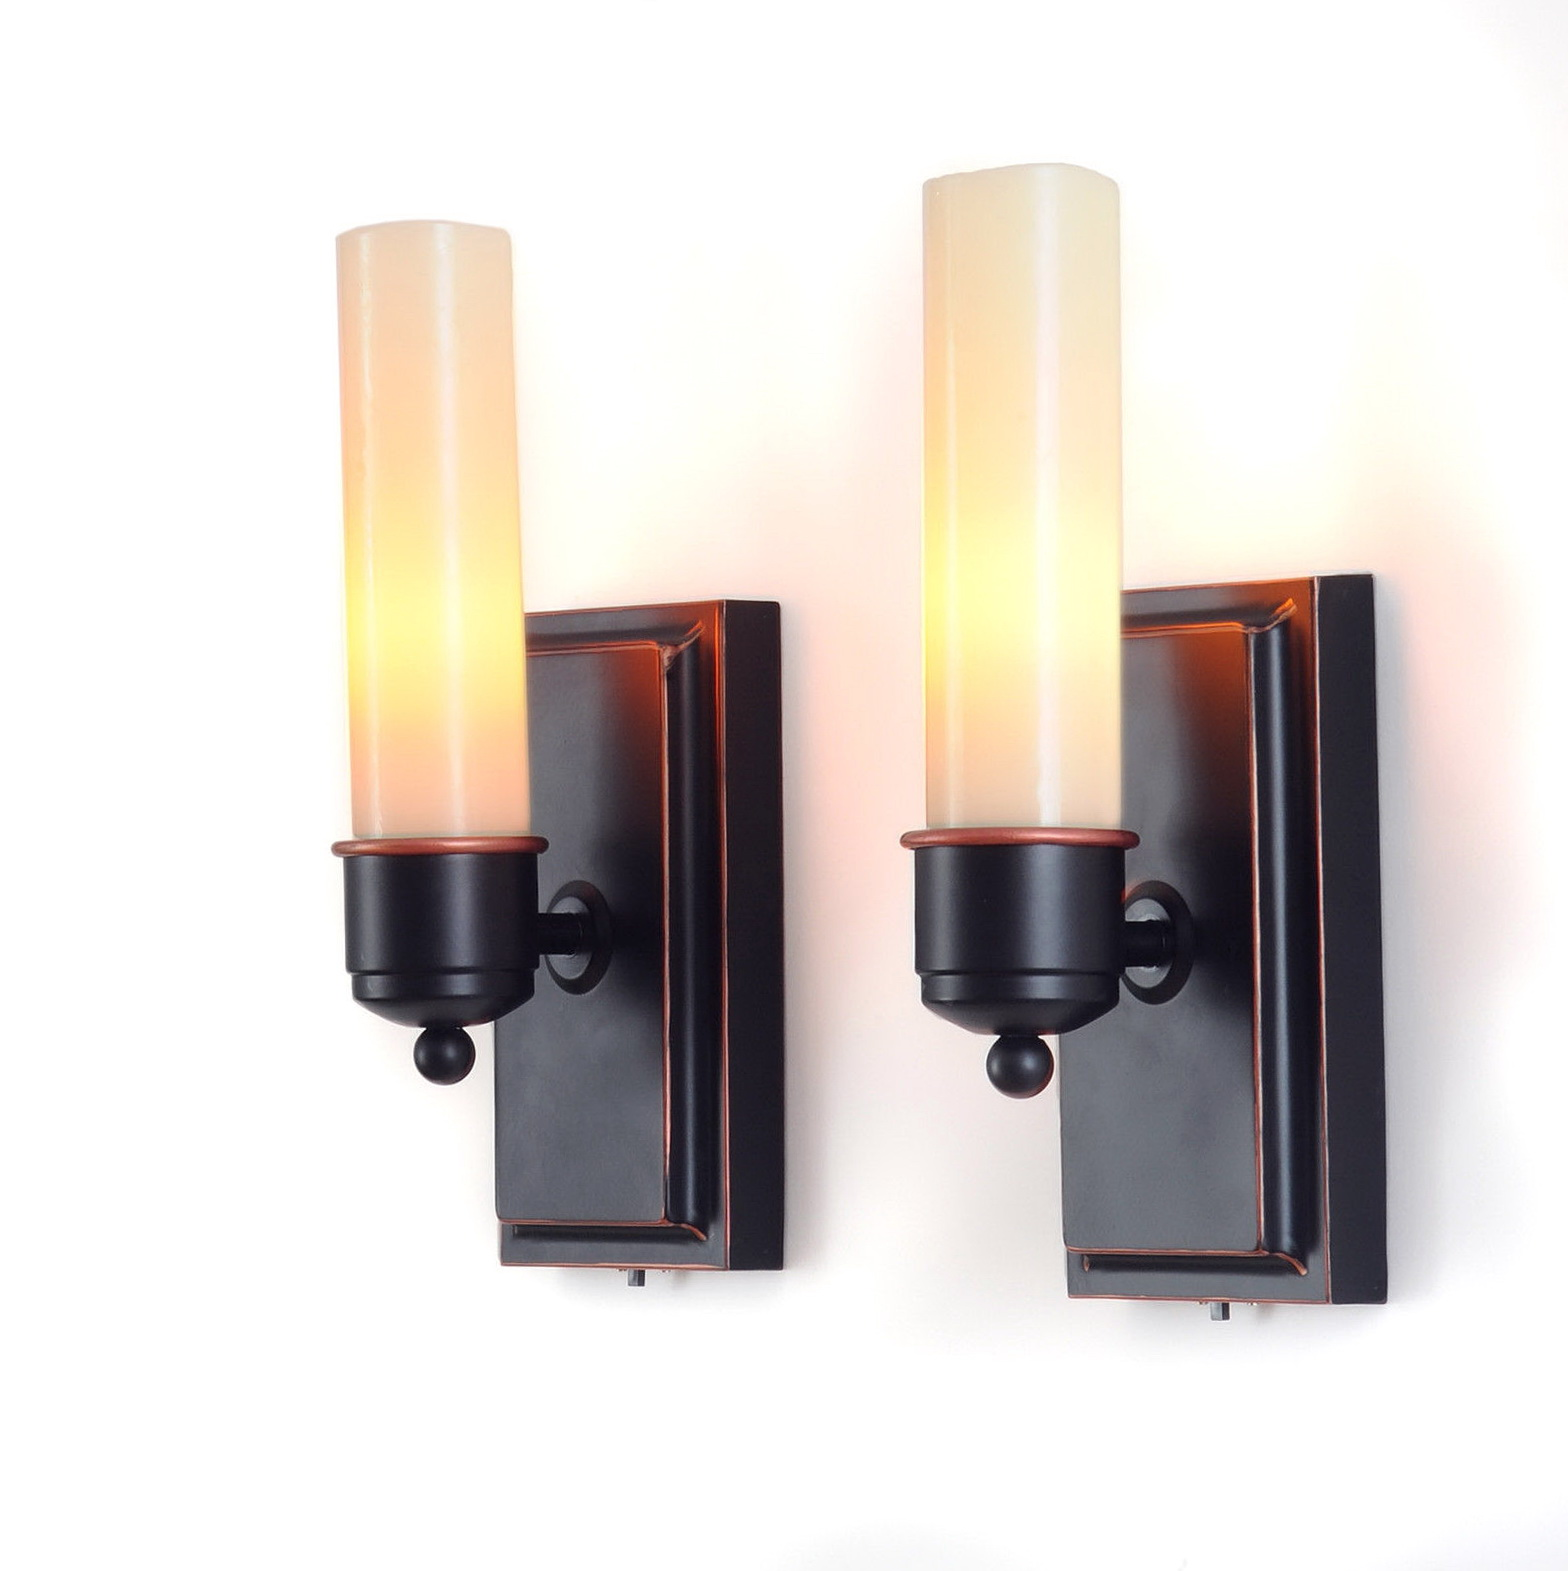 Wall Lights Models : Change the look of your garden with Wall light battery operated Warisan Lighting